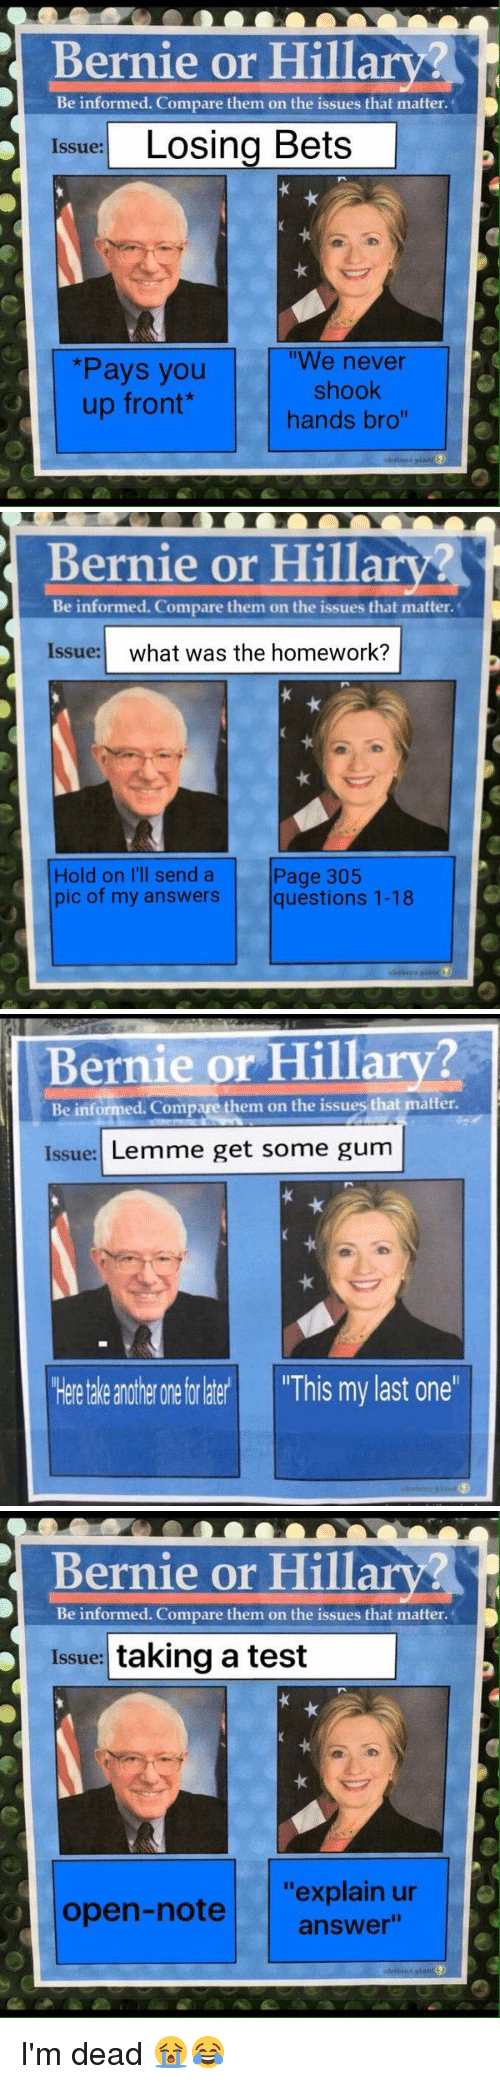 "Funny, Information, and Test: Bernie or Hillary?  Be informed. Compare them on the issues that matter.  Issue:  Losing Bets  ""We never  *Pays you  shook  up front  hands bro""   Bernie or Hillary  Be informed. Compare them on the issues that matter.  Issue:  what was the homework?  Page 305  Hold on I'll send a  pic of my answers  questions 1-18   Bernie or Hillary?  Be informed. Comp  them on the issues that matter.  Issue:  Lemme get some gum  theetale anotherone for  This my last one   Bernie or Hillary?  Be informed. Compare them on the issues that matter.  Issue:  taking a test  ""explain ur  open-note  answer"" I'm dead 😭😂"